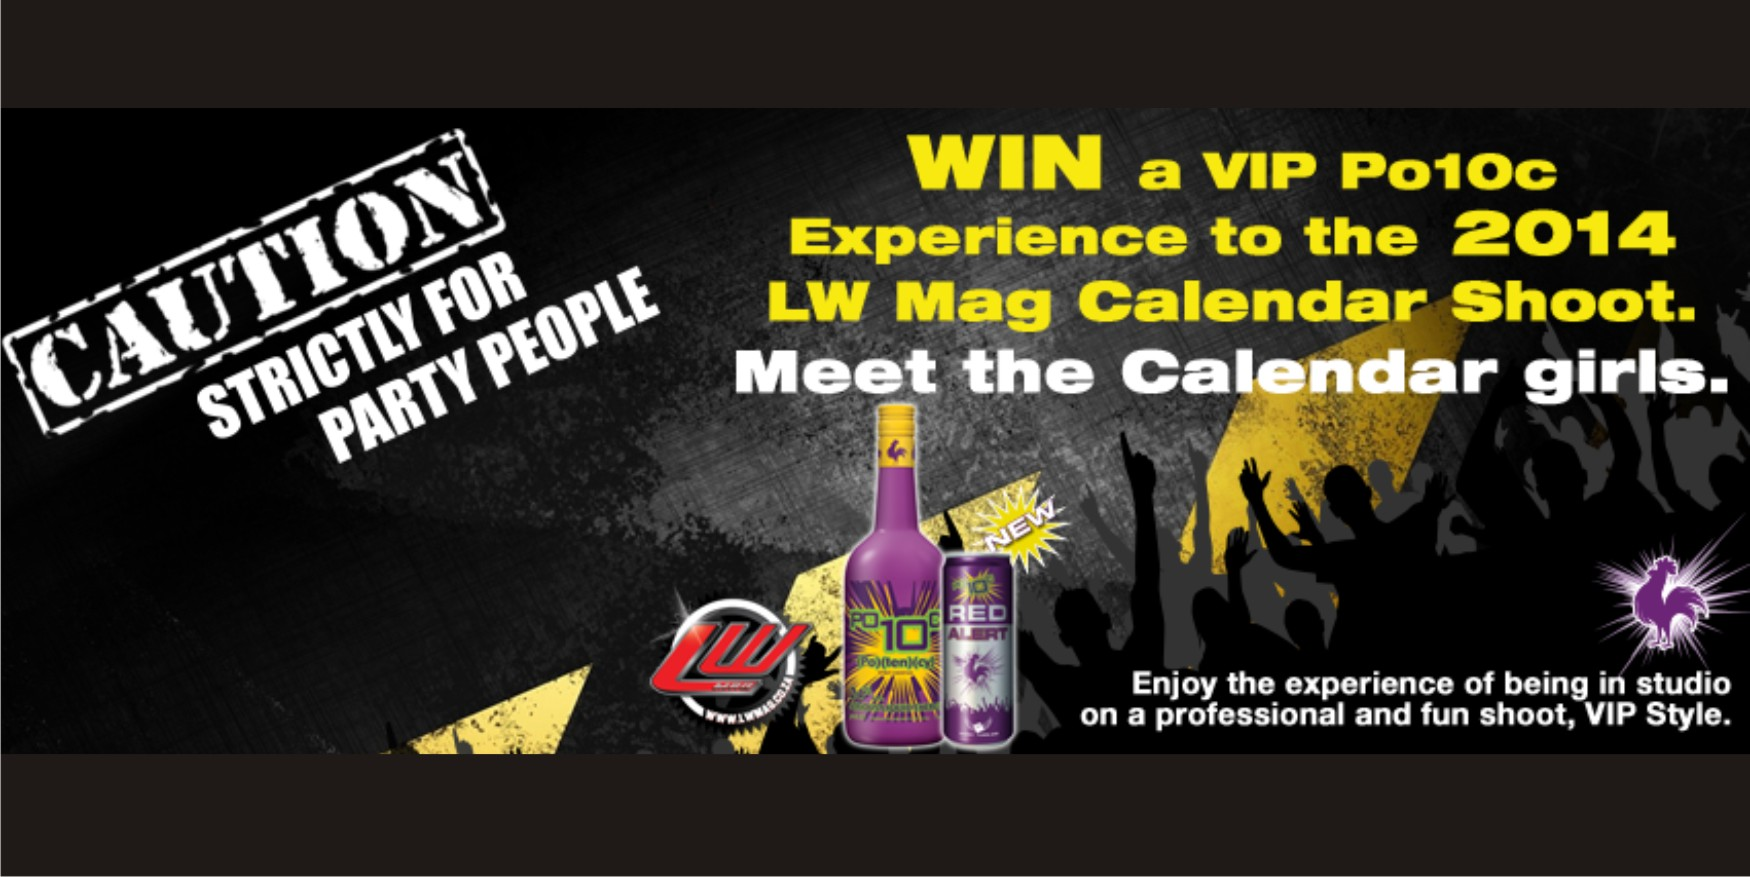 Win a VIP experience to the LW Mag Po10c 2014 Calendar Shoot